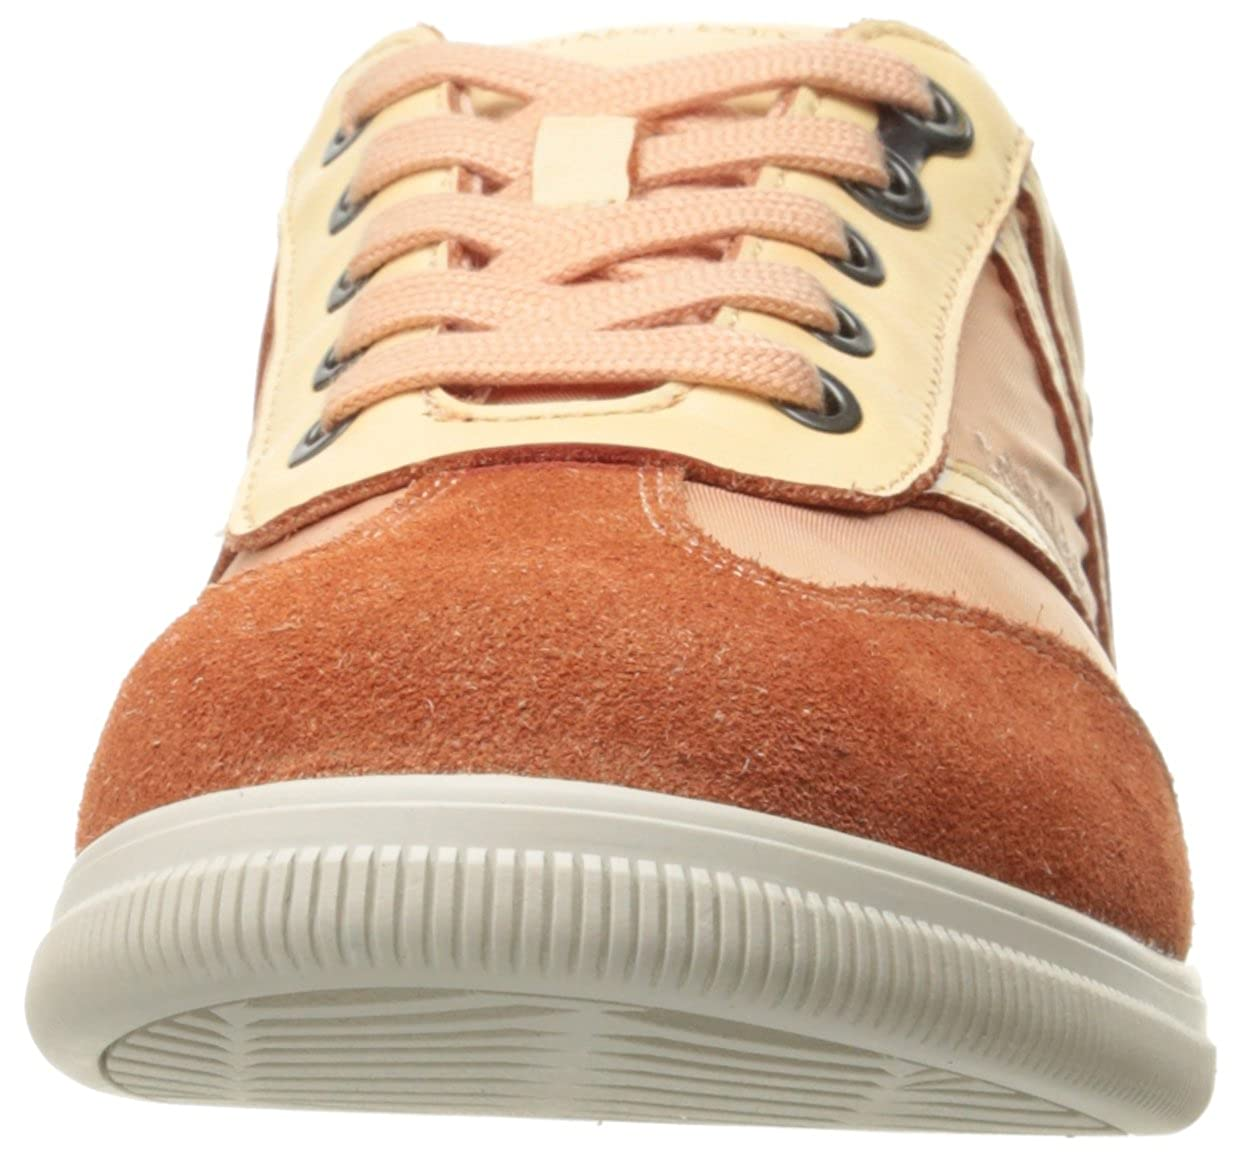 Calvin Klein Jeans Women's Sally Fashion Washed N Fashion Sally Sneaker B01MU7QBVE Fashion Sneakers 0e78f7